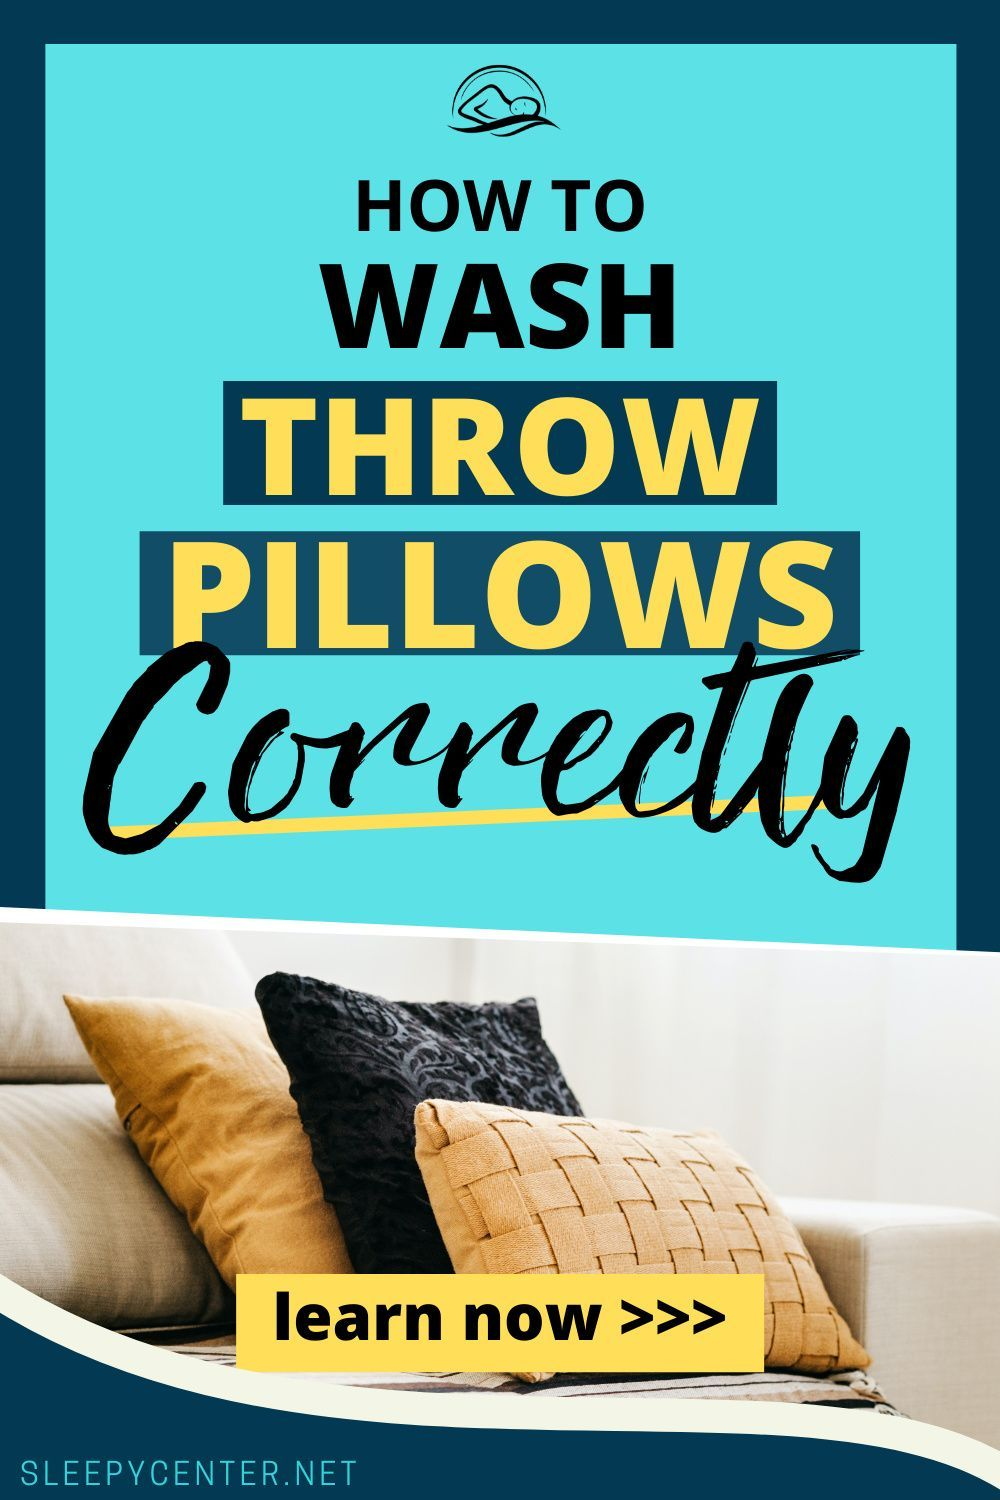 Wash Your Throw Pillows Correctly With These Easy Step By Step Guide How To Wash Throw Pillows Throw Pillows Pillows